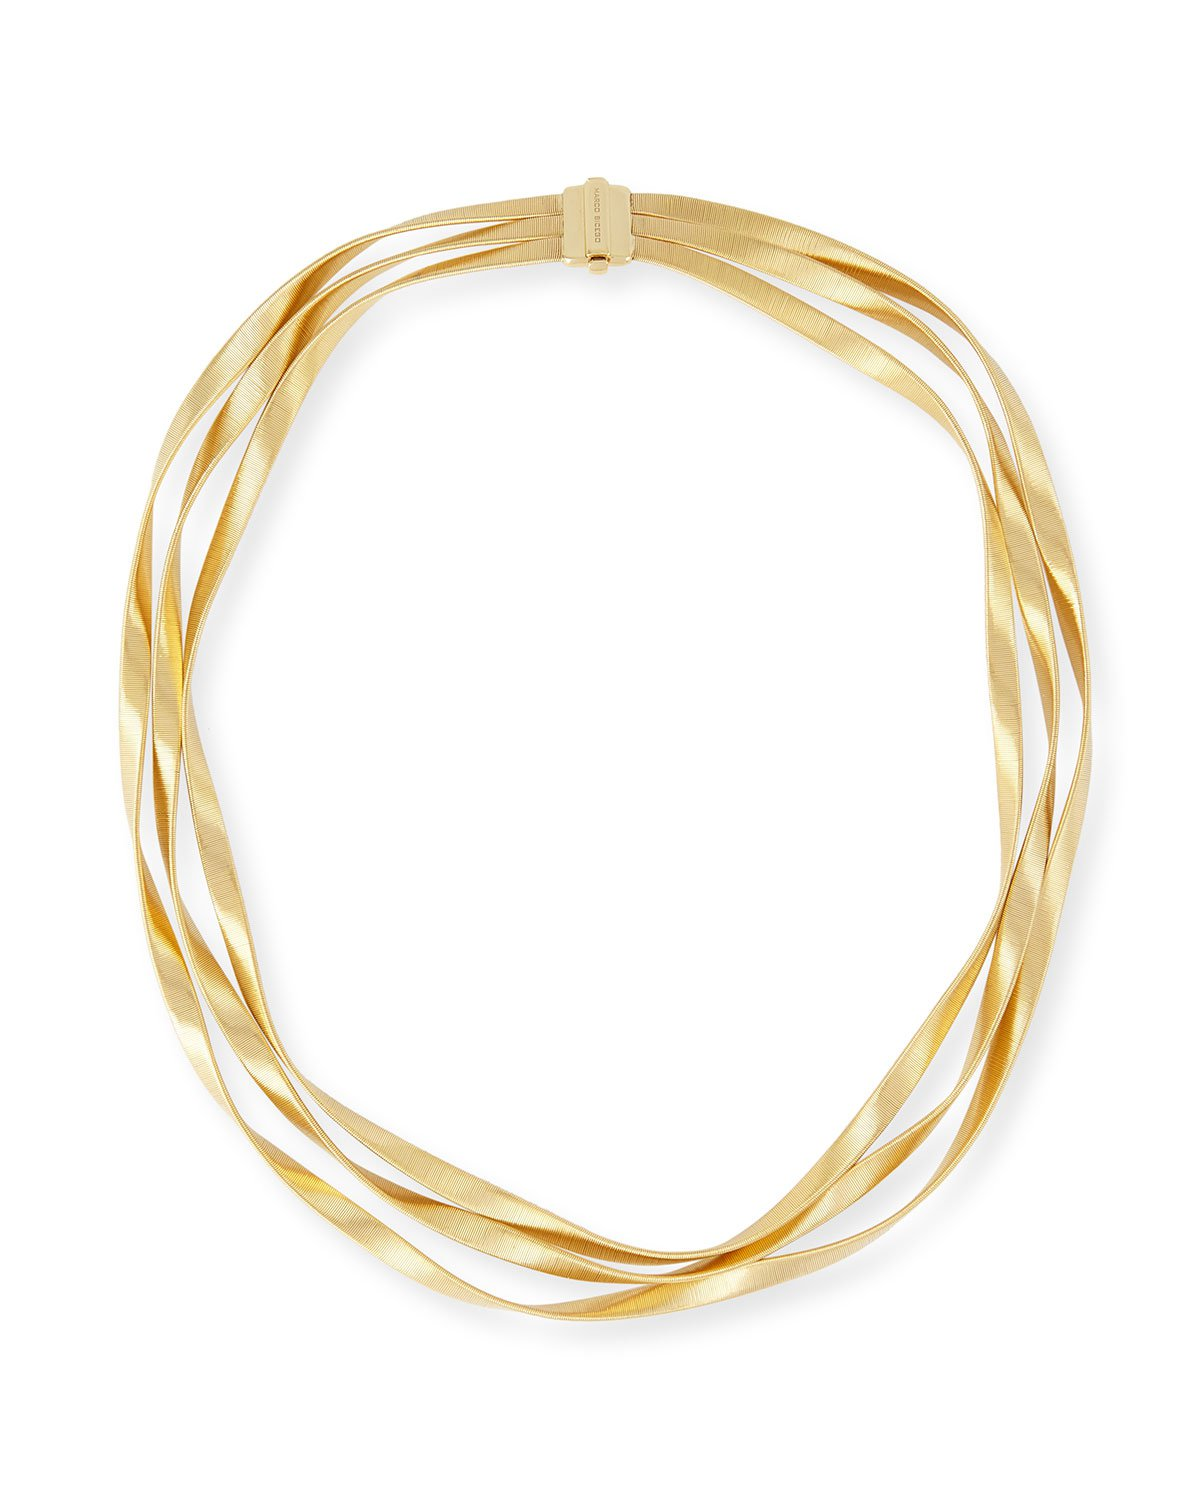 "Marco Bicego 16.5"" Marrakech 18k Three-Strand Necklace"